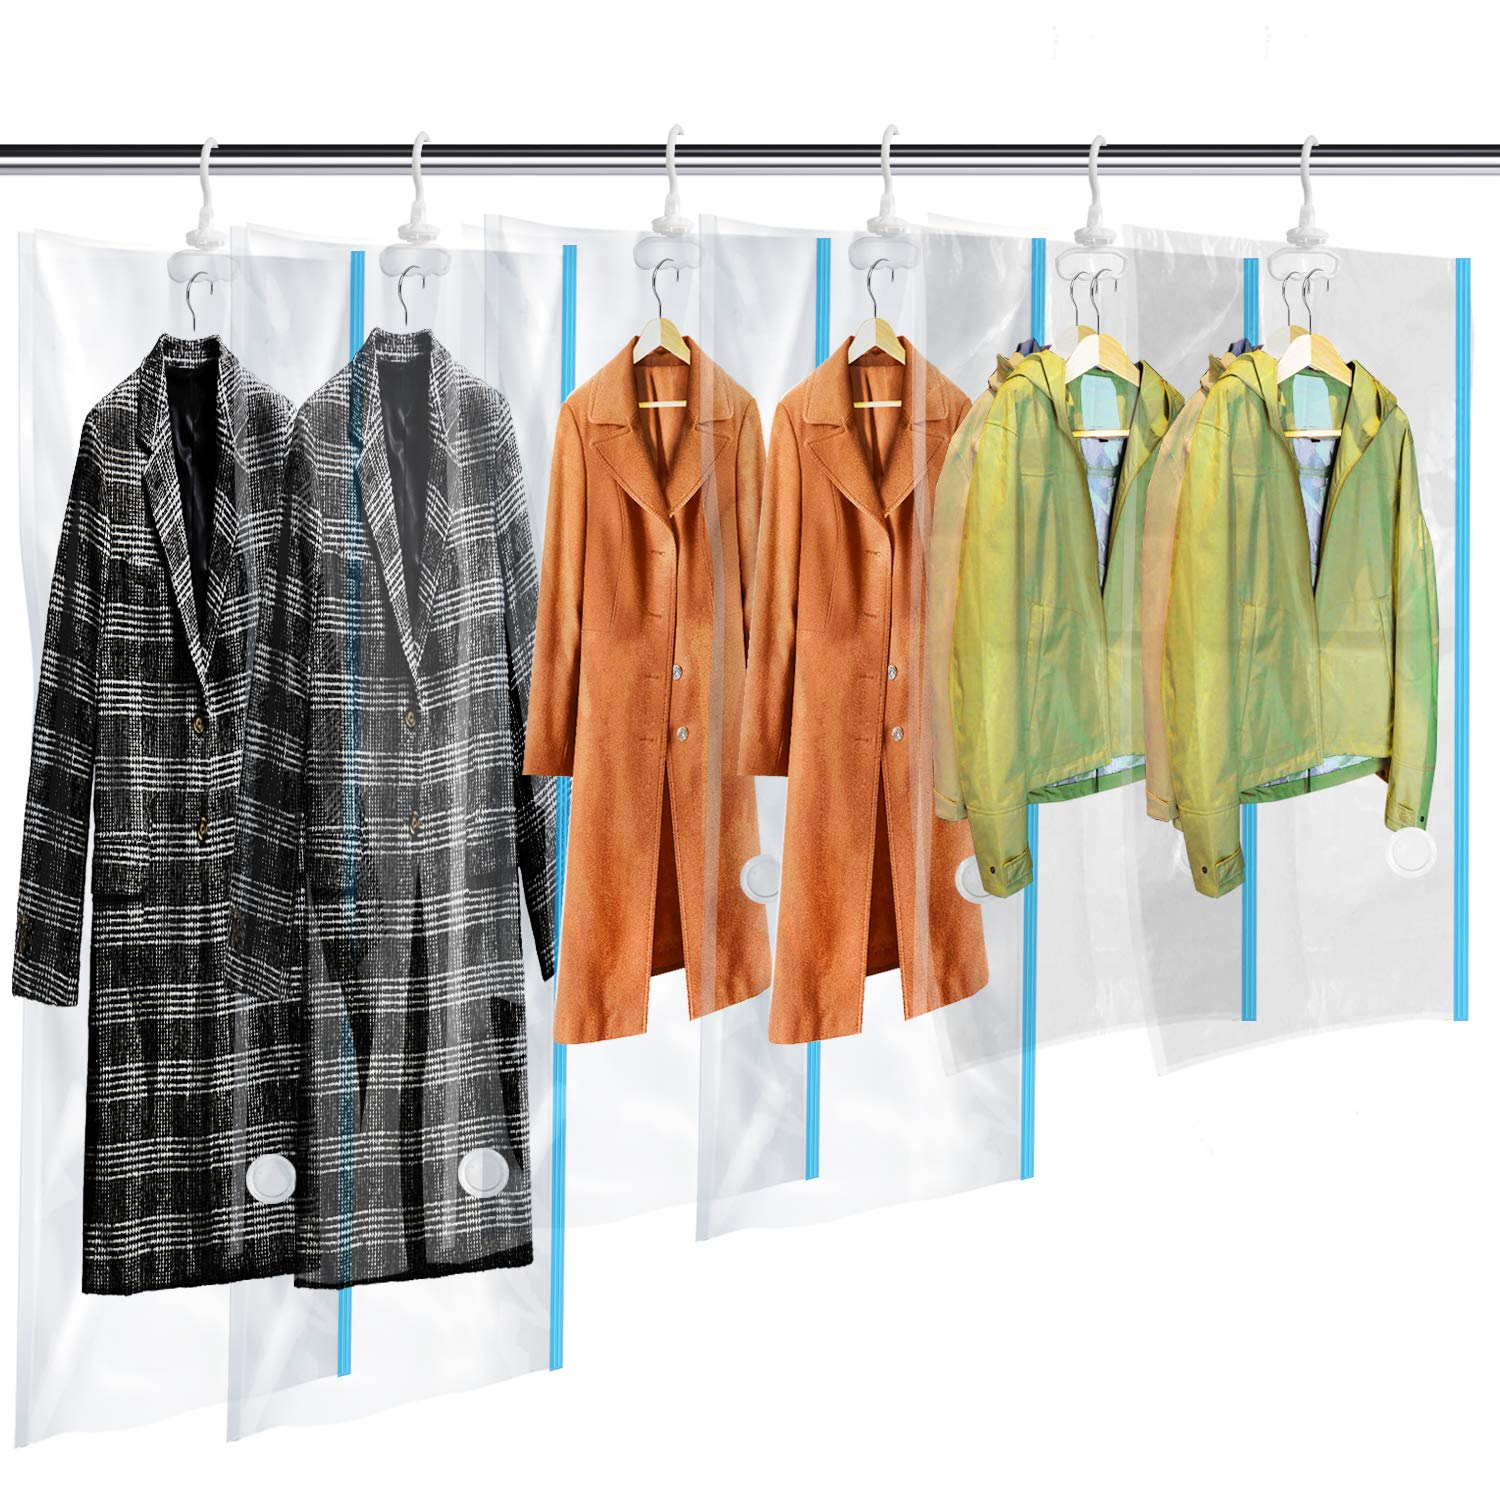 + 3*Standard 105x70cm 3*Extra Long Hanging Vacuum Storage Bags 6 Pack 145x70cm Jackets Space Saver Bag Dress Cover with Hook for Coats Hand Pump Included Clothes /& Closet Storage